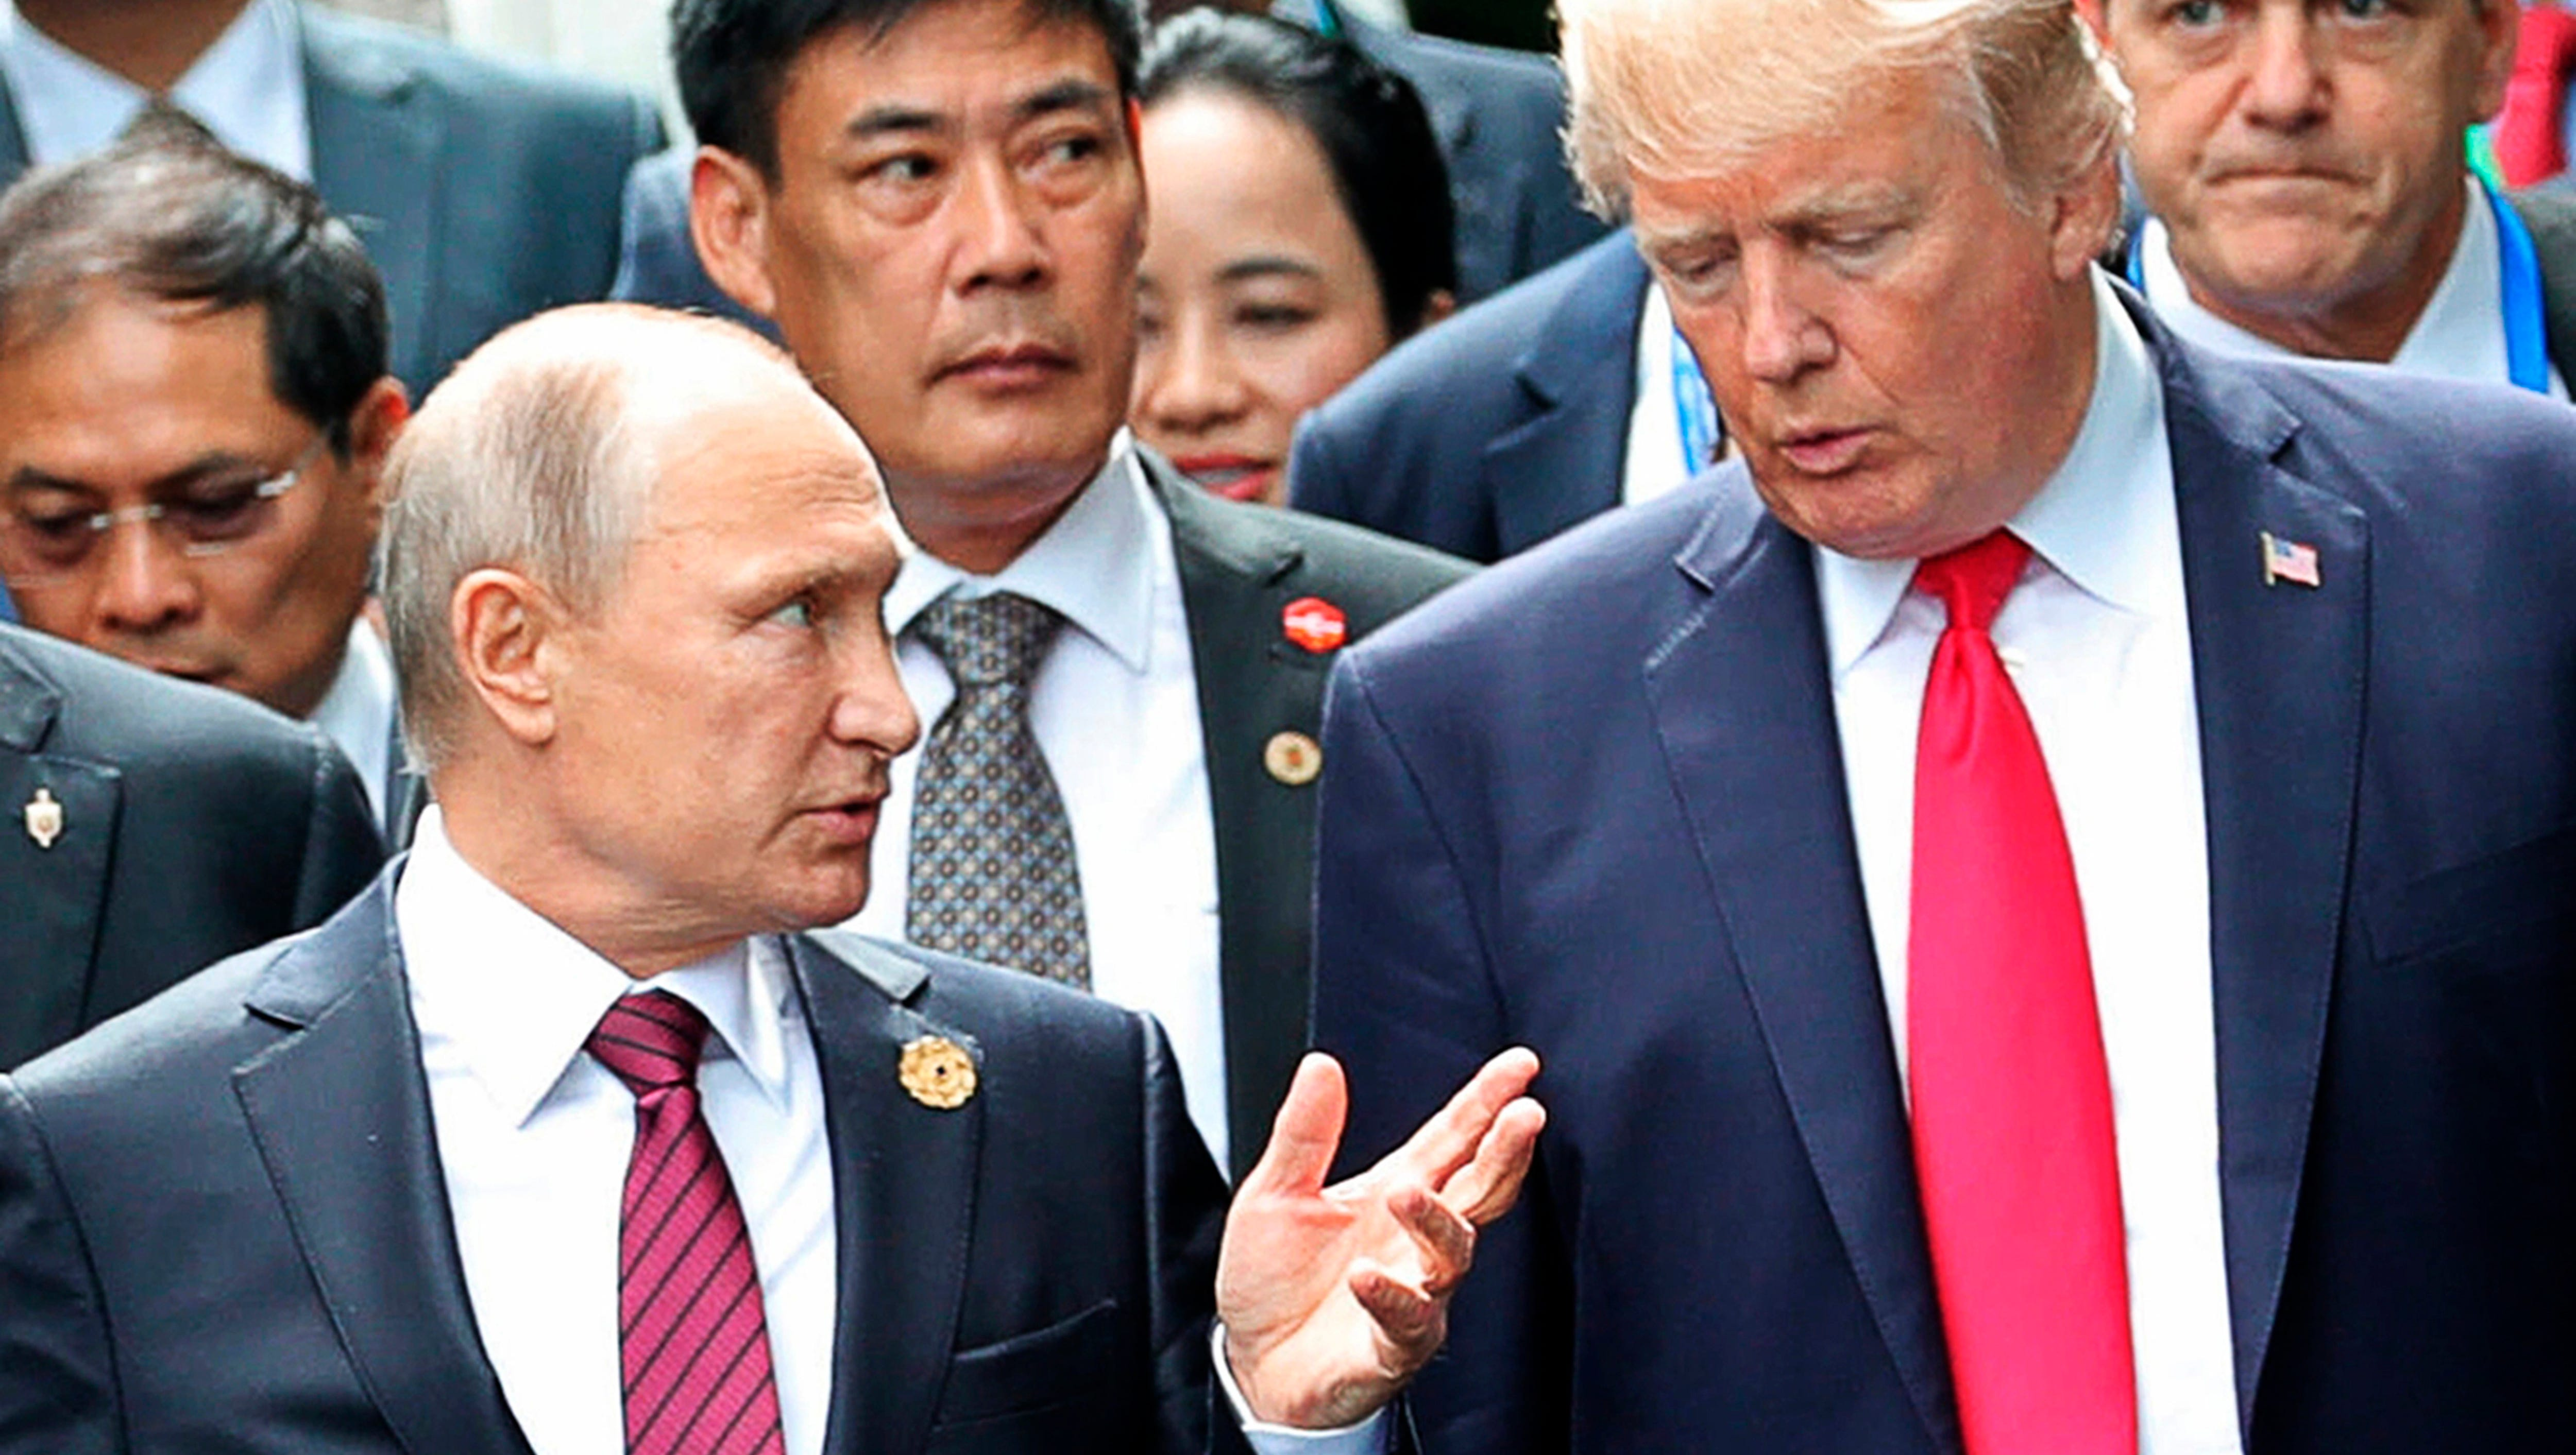 Trump S Desire To Get Close To Putin Is Enabling Russian Aggression